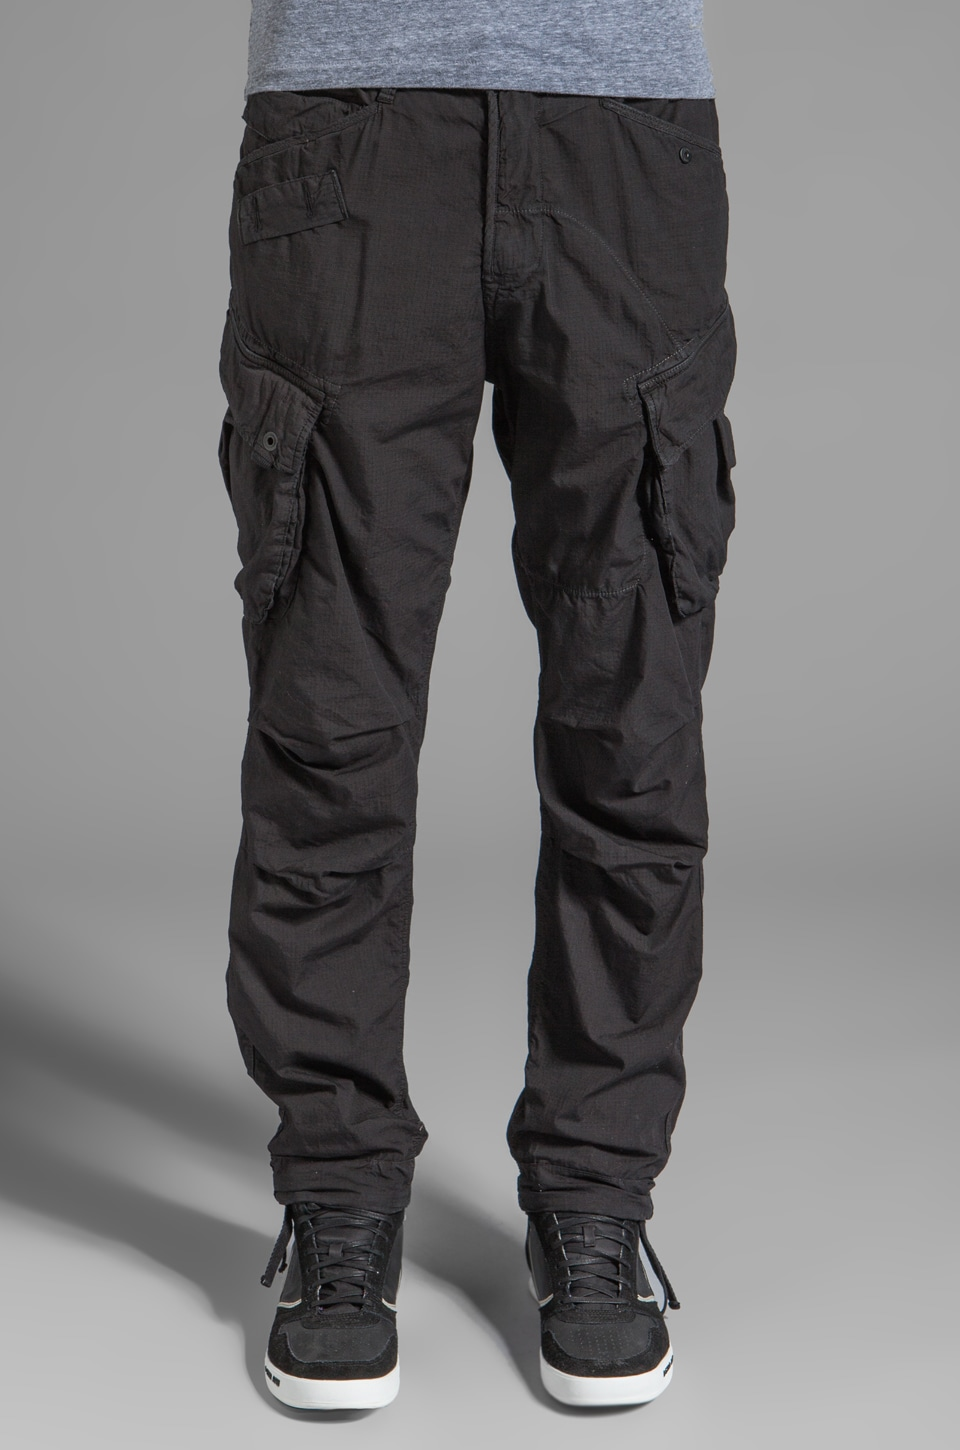 G-Star Rovic Tapered Pant in Black